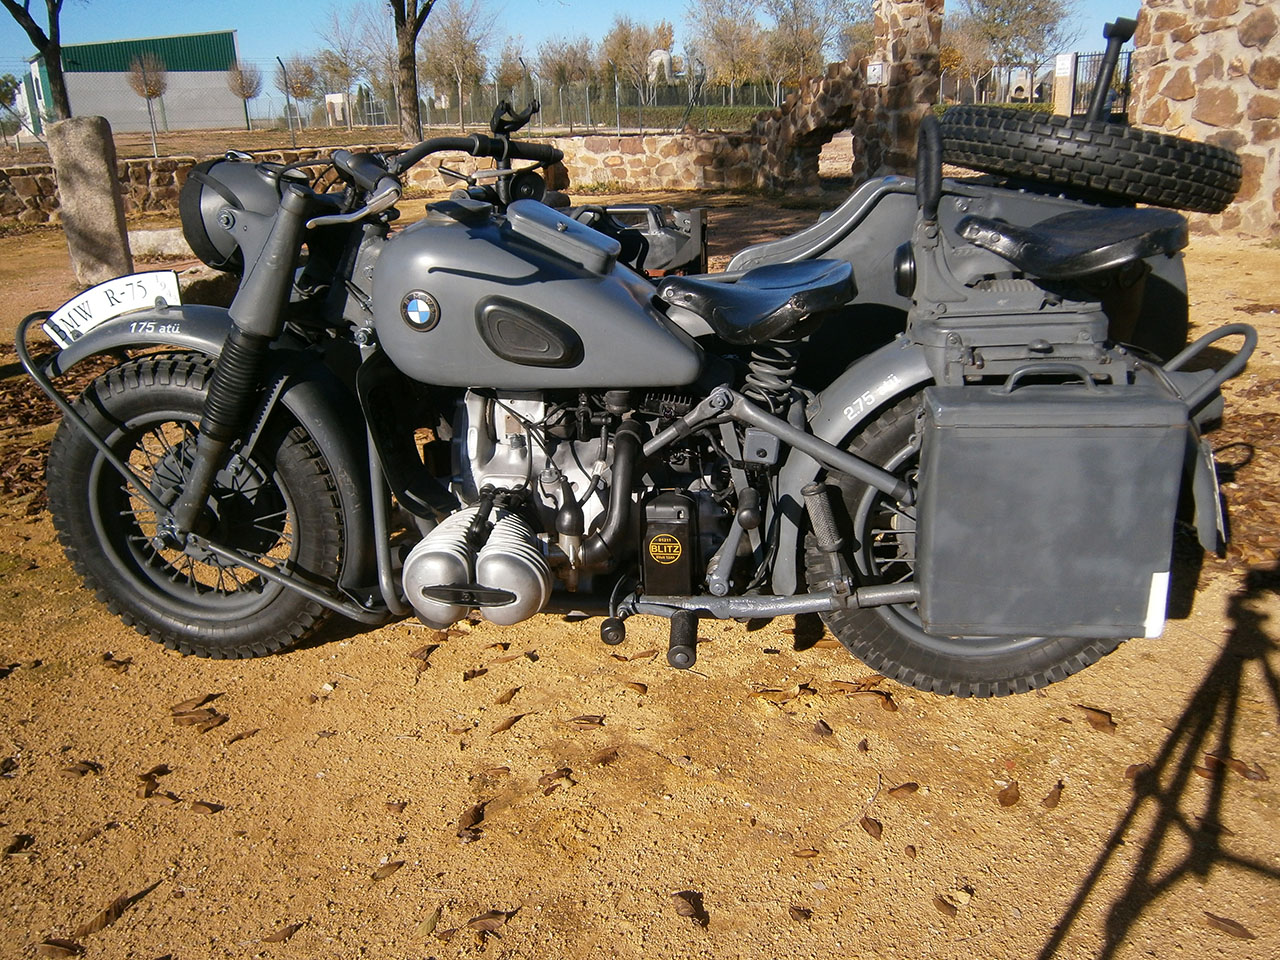 BMW R75 with sidecar 1943 pics #2644